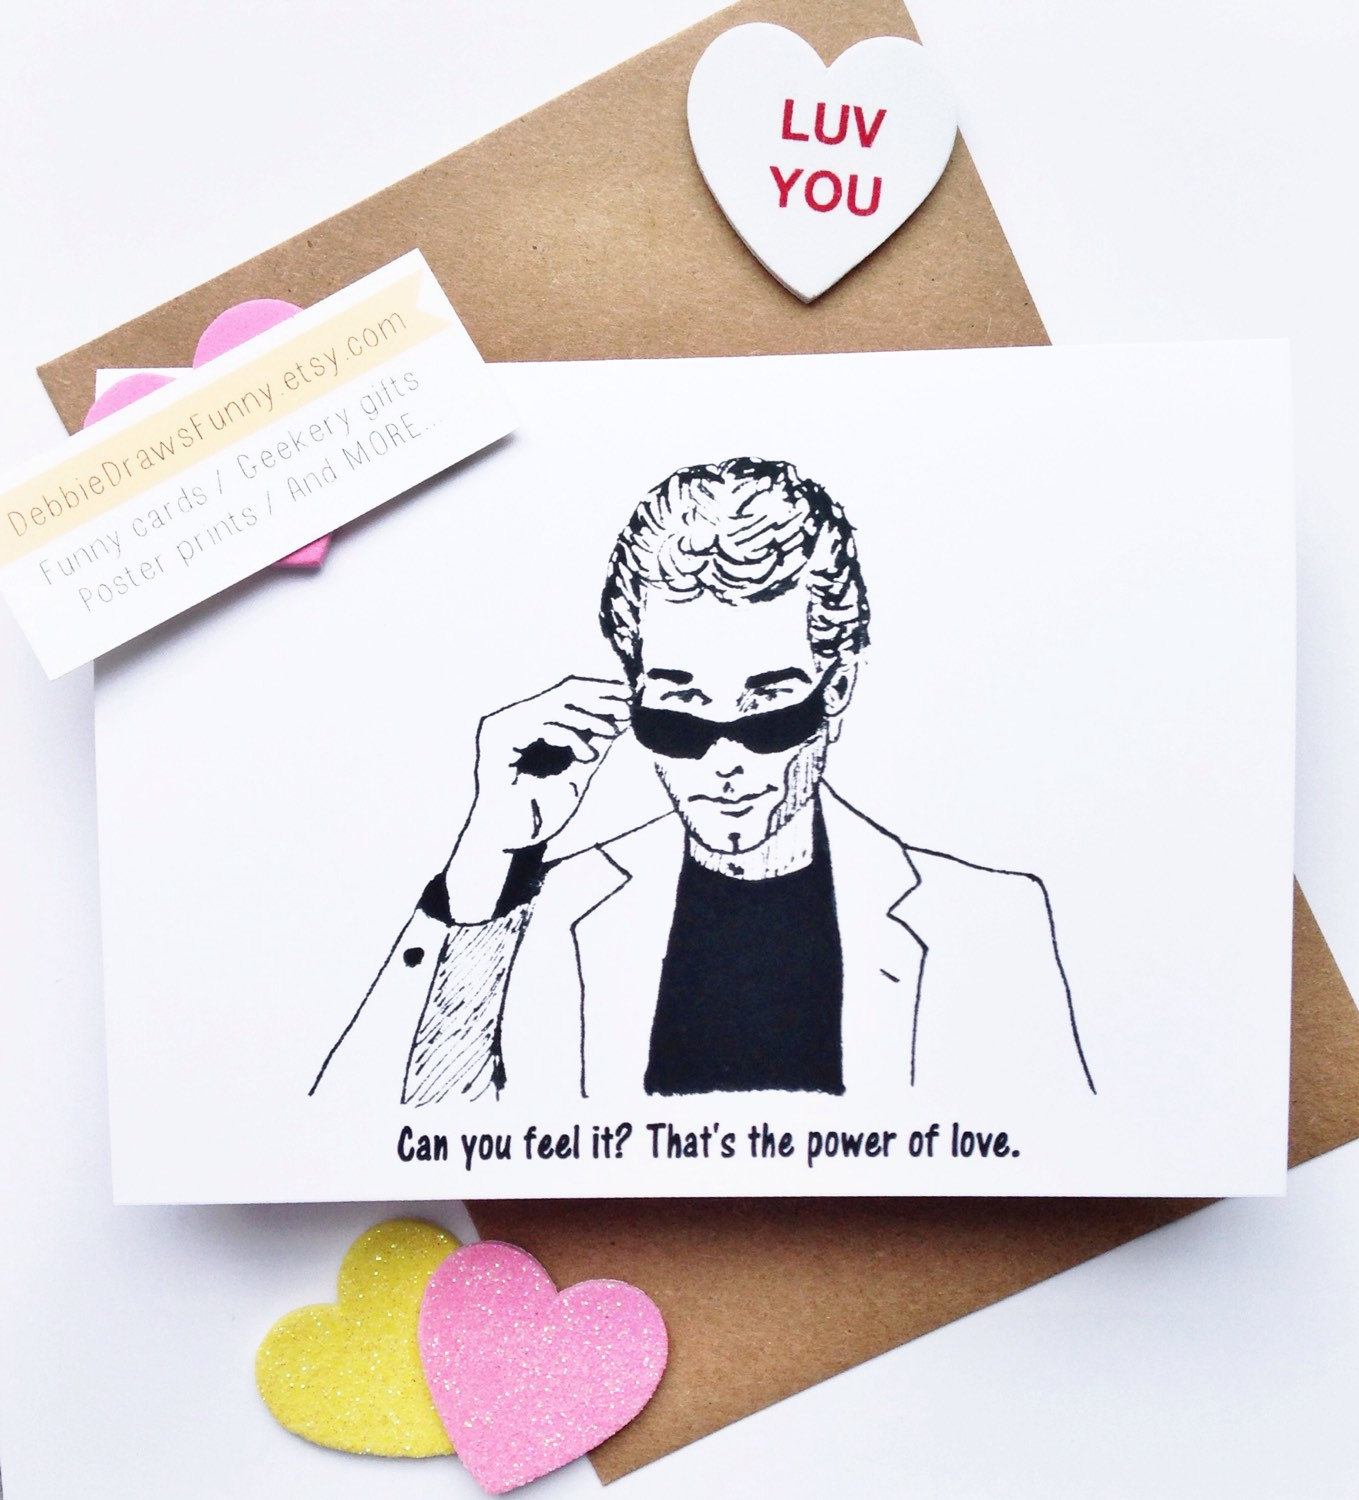 huey lewis valentines day card power of love - via funny valentine cards etsy from EmmalineBride.com